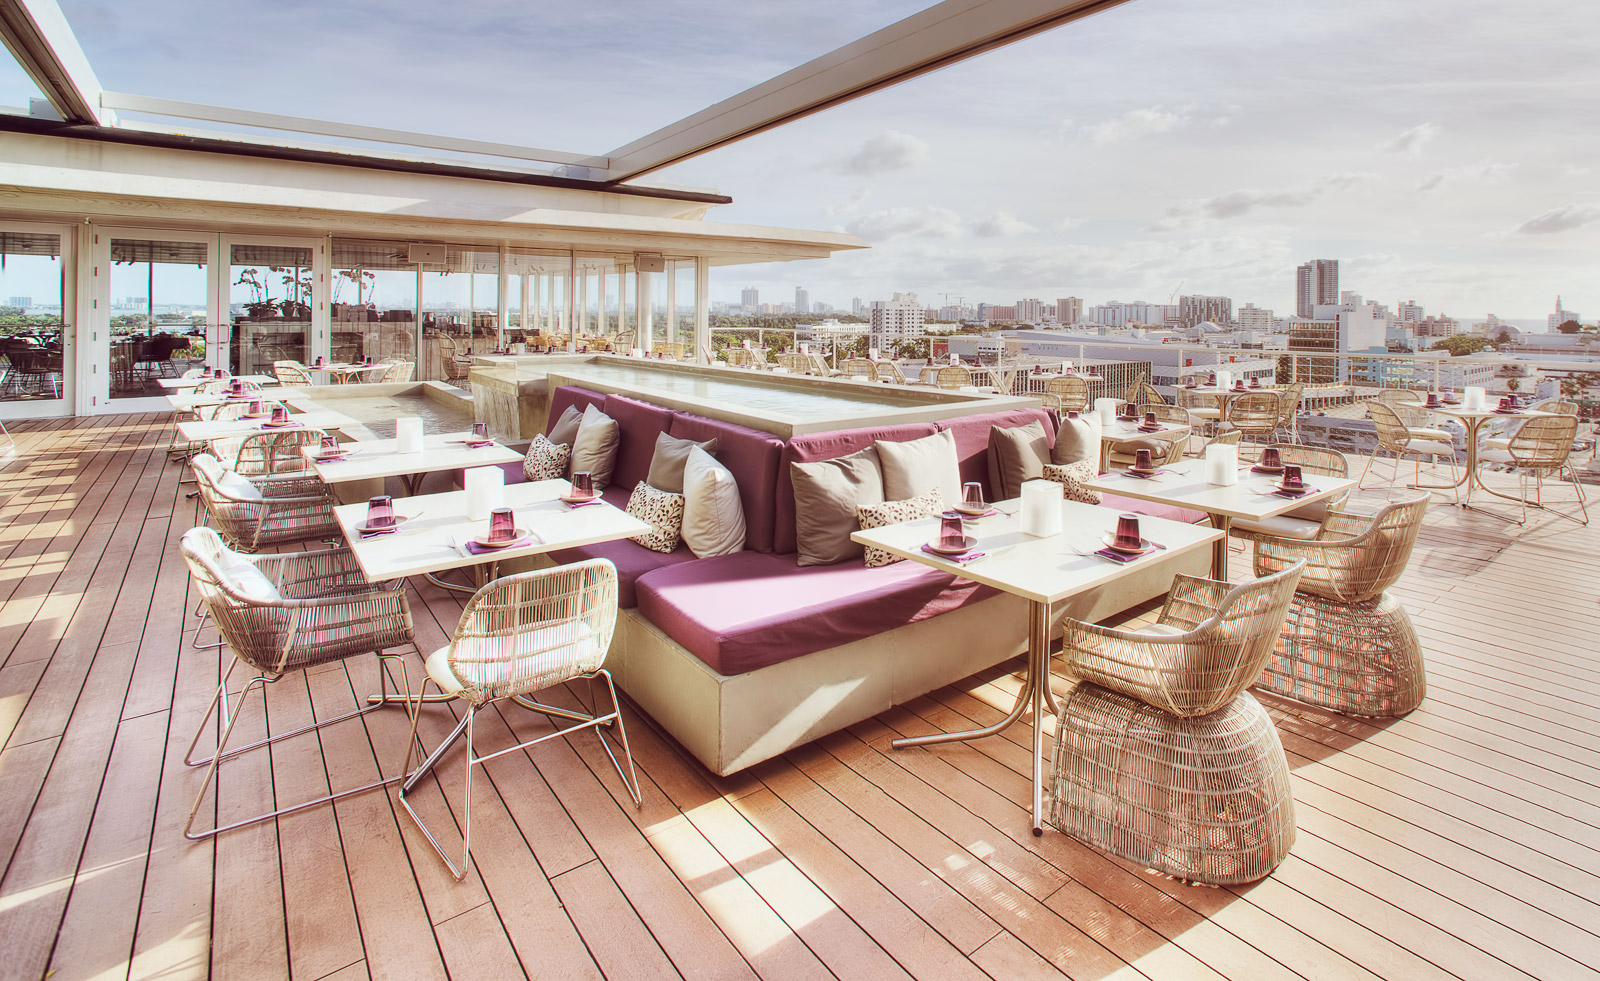 The Best Rooftop Bars In Miami For 2018 In Pictures